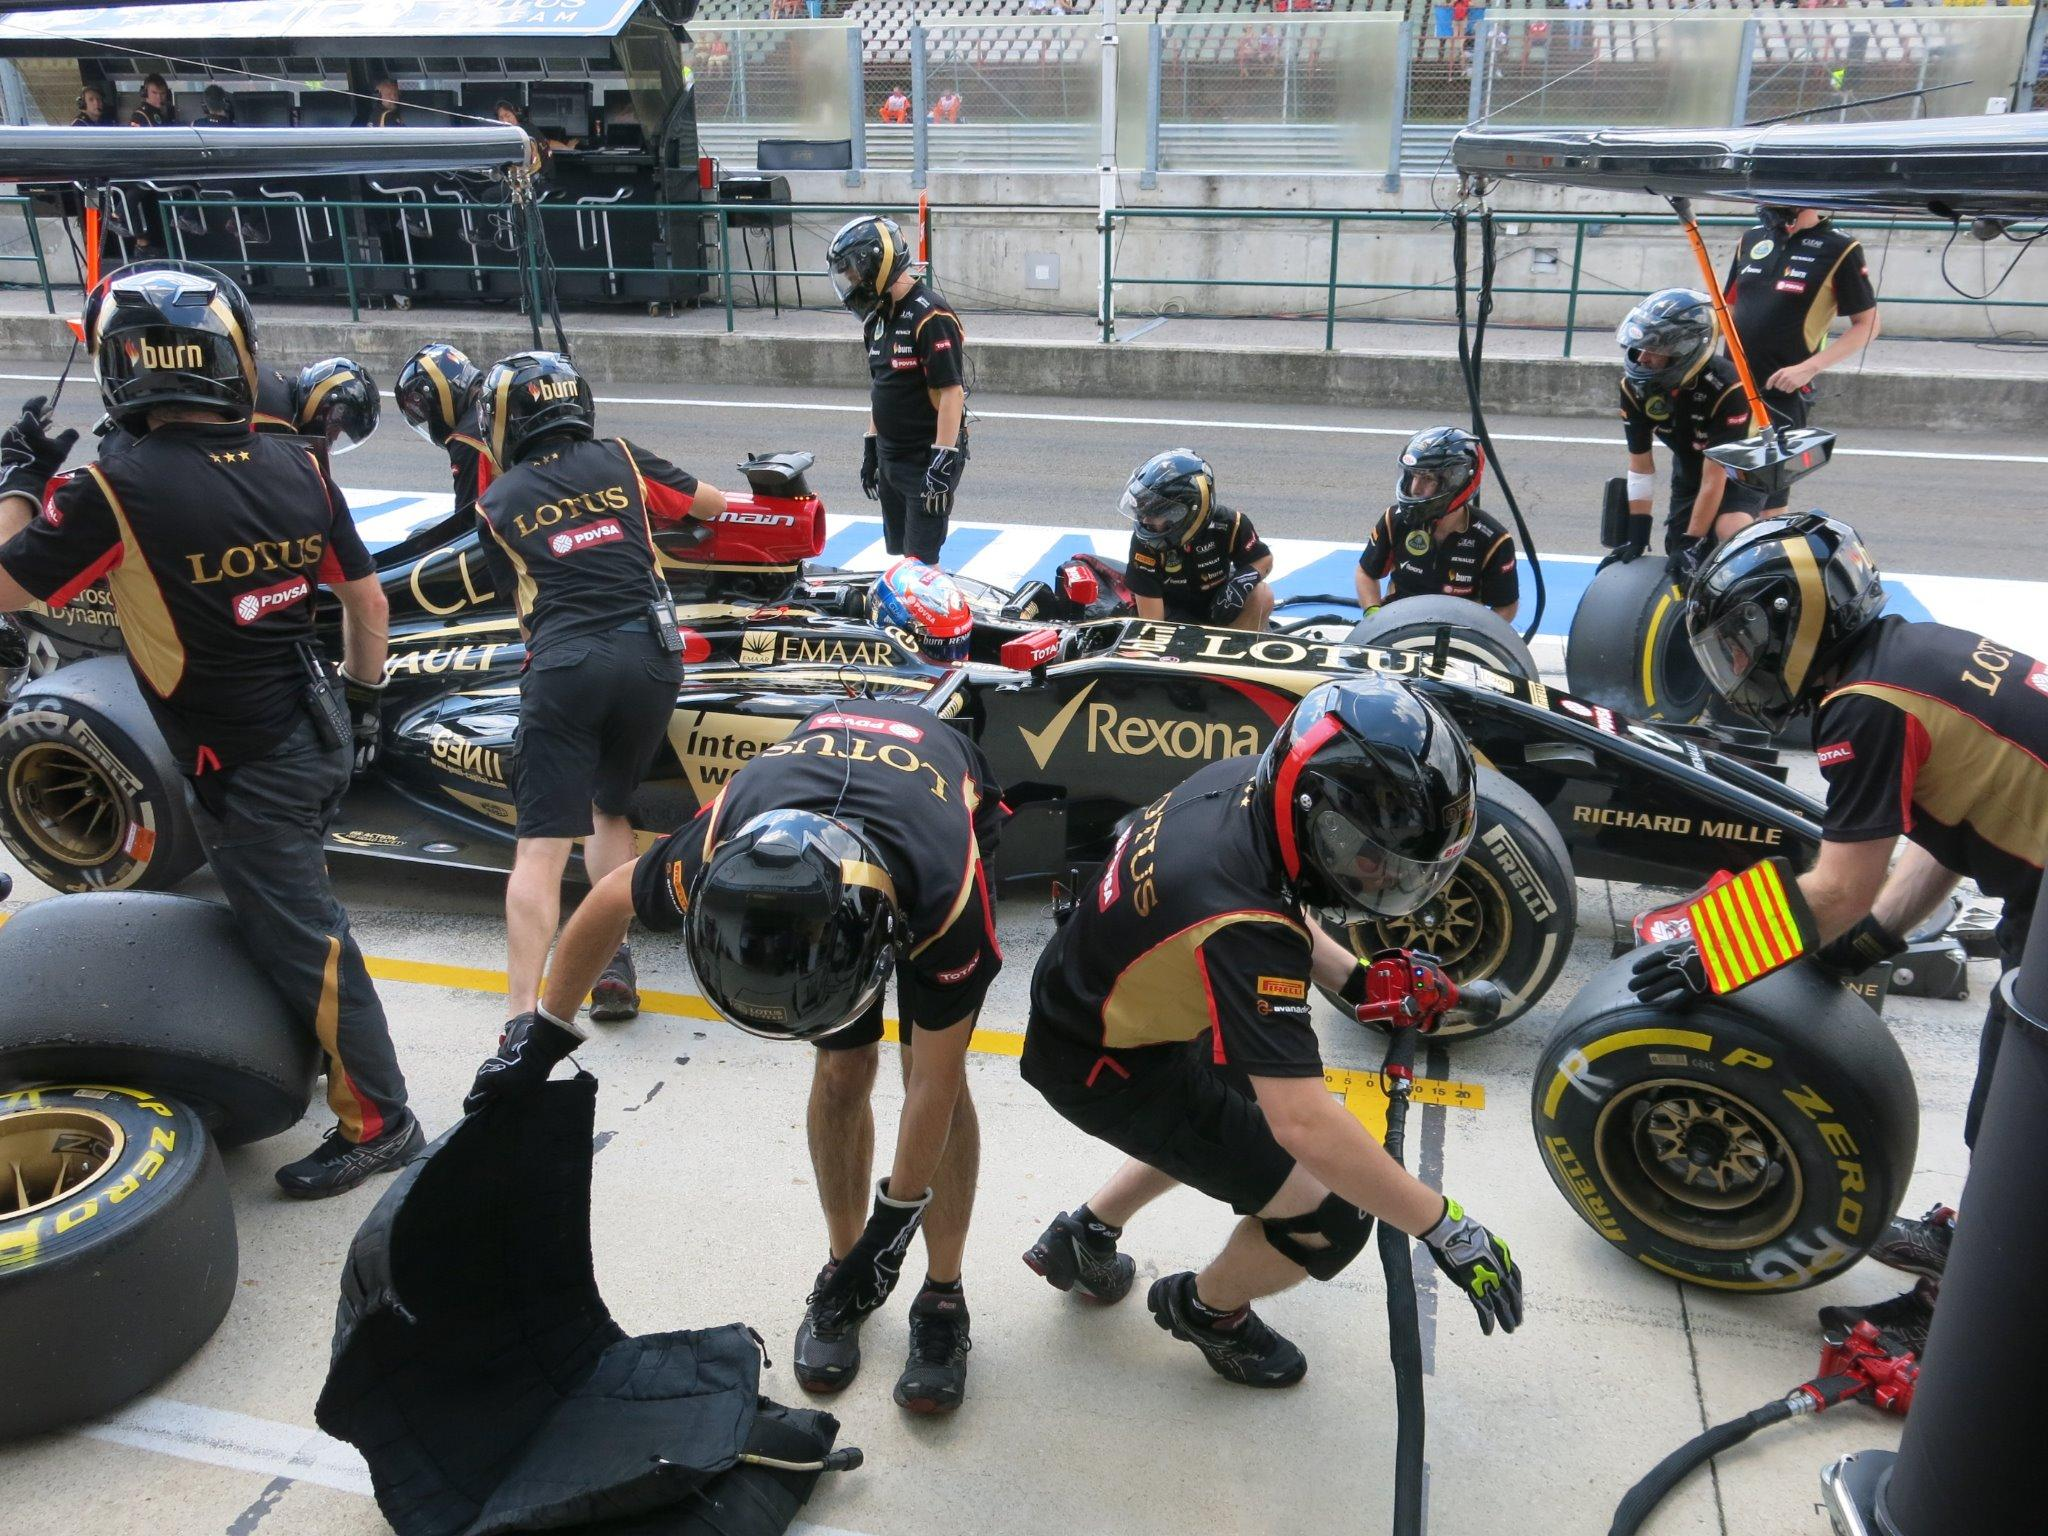 RT @Lotus_F1Team: And a little 'what happens next' from the final pit stop of the session for @RGrosjean #HungarianGP #F1 http://t.co/x7ufO…